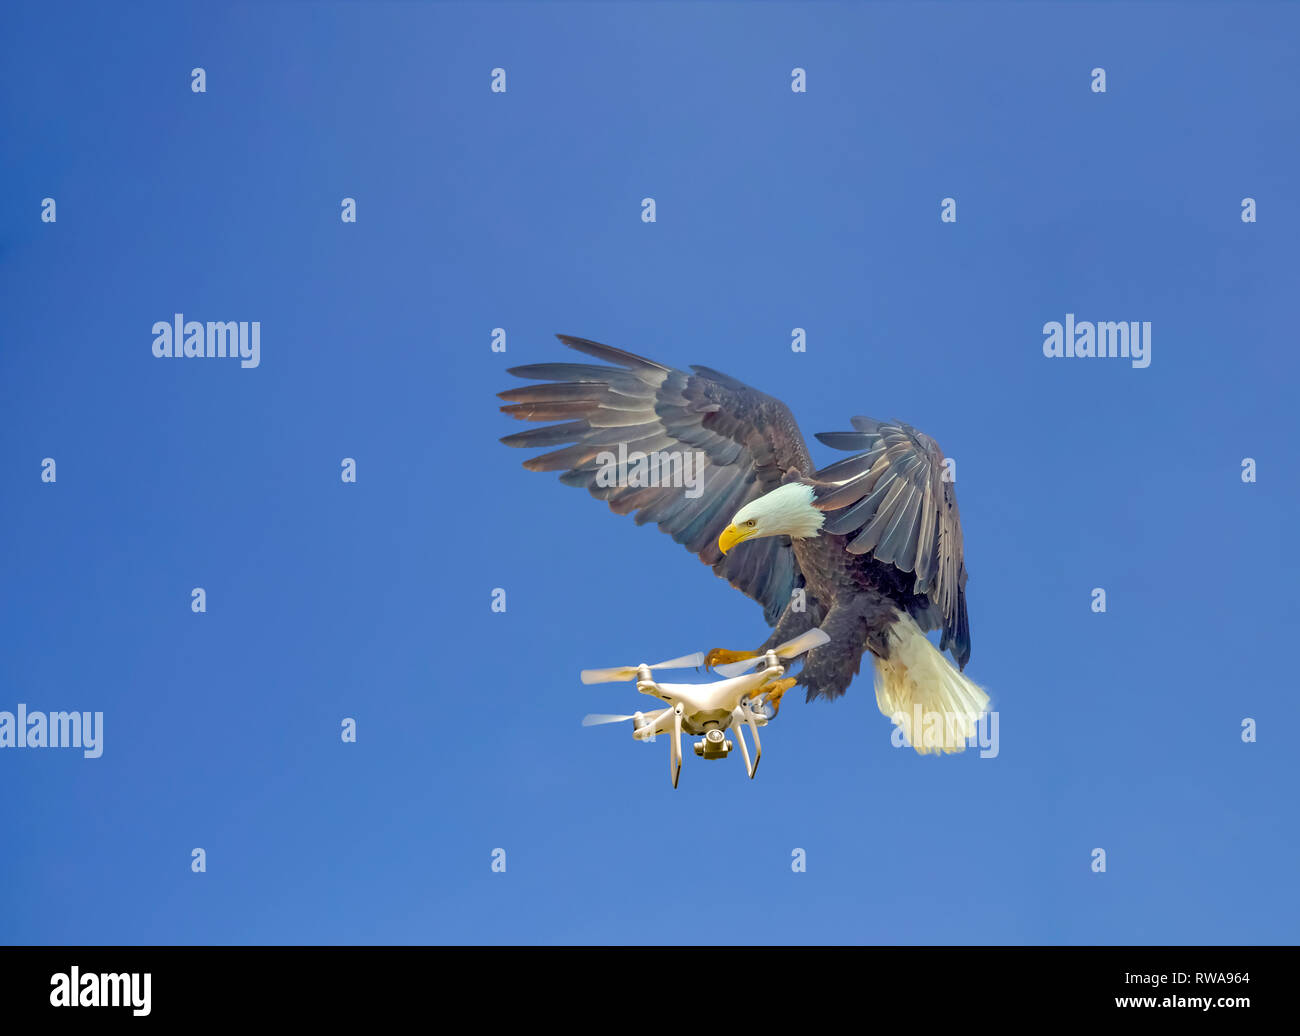 Digitally enhanced image of Nature Vs Technology concept. An eagle attacks an airborne drone on a blue sky background - Stock Image